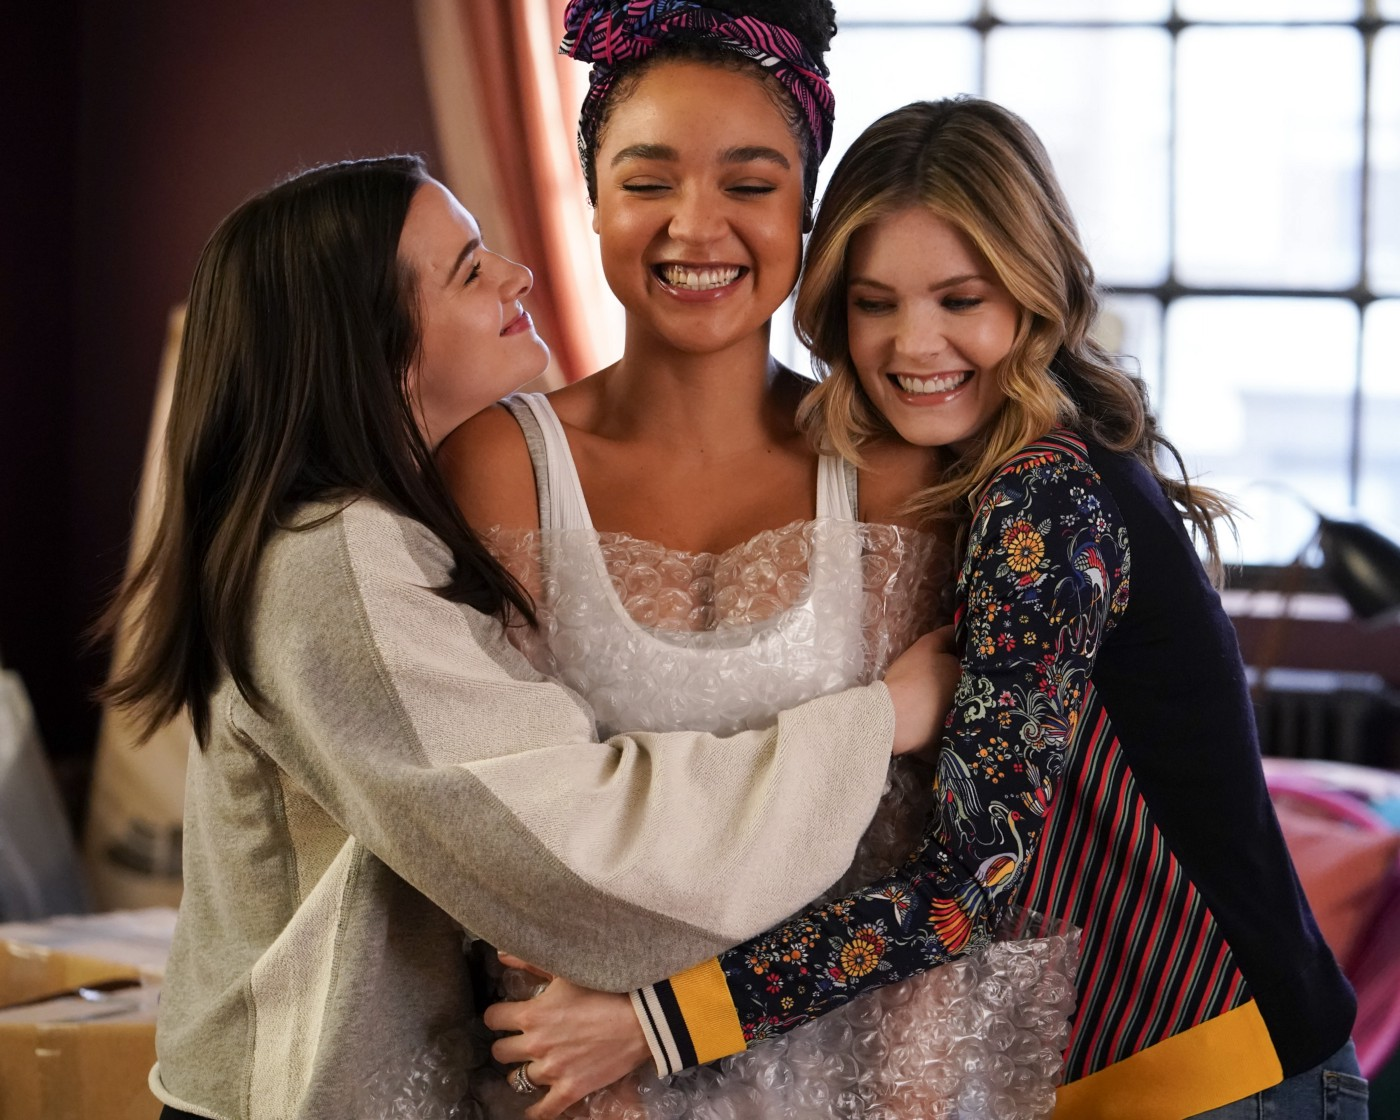 Three women, who are friends, hugging each other in a moment of tenderness.